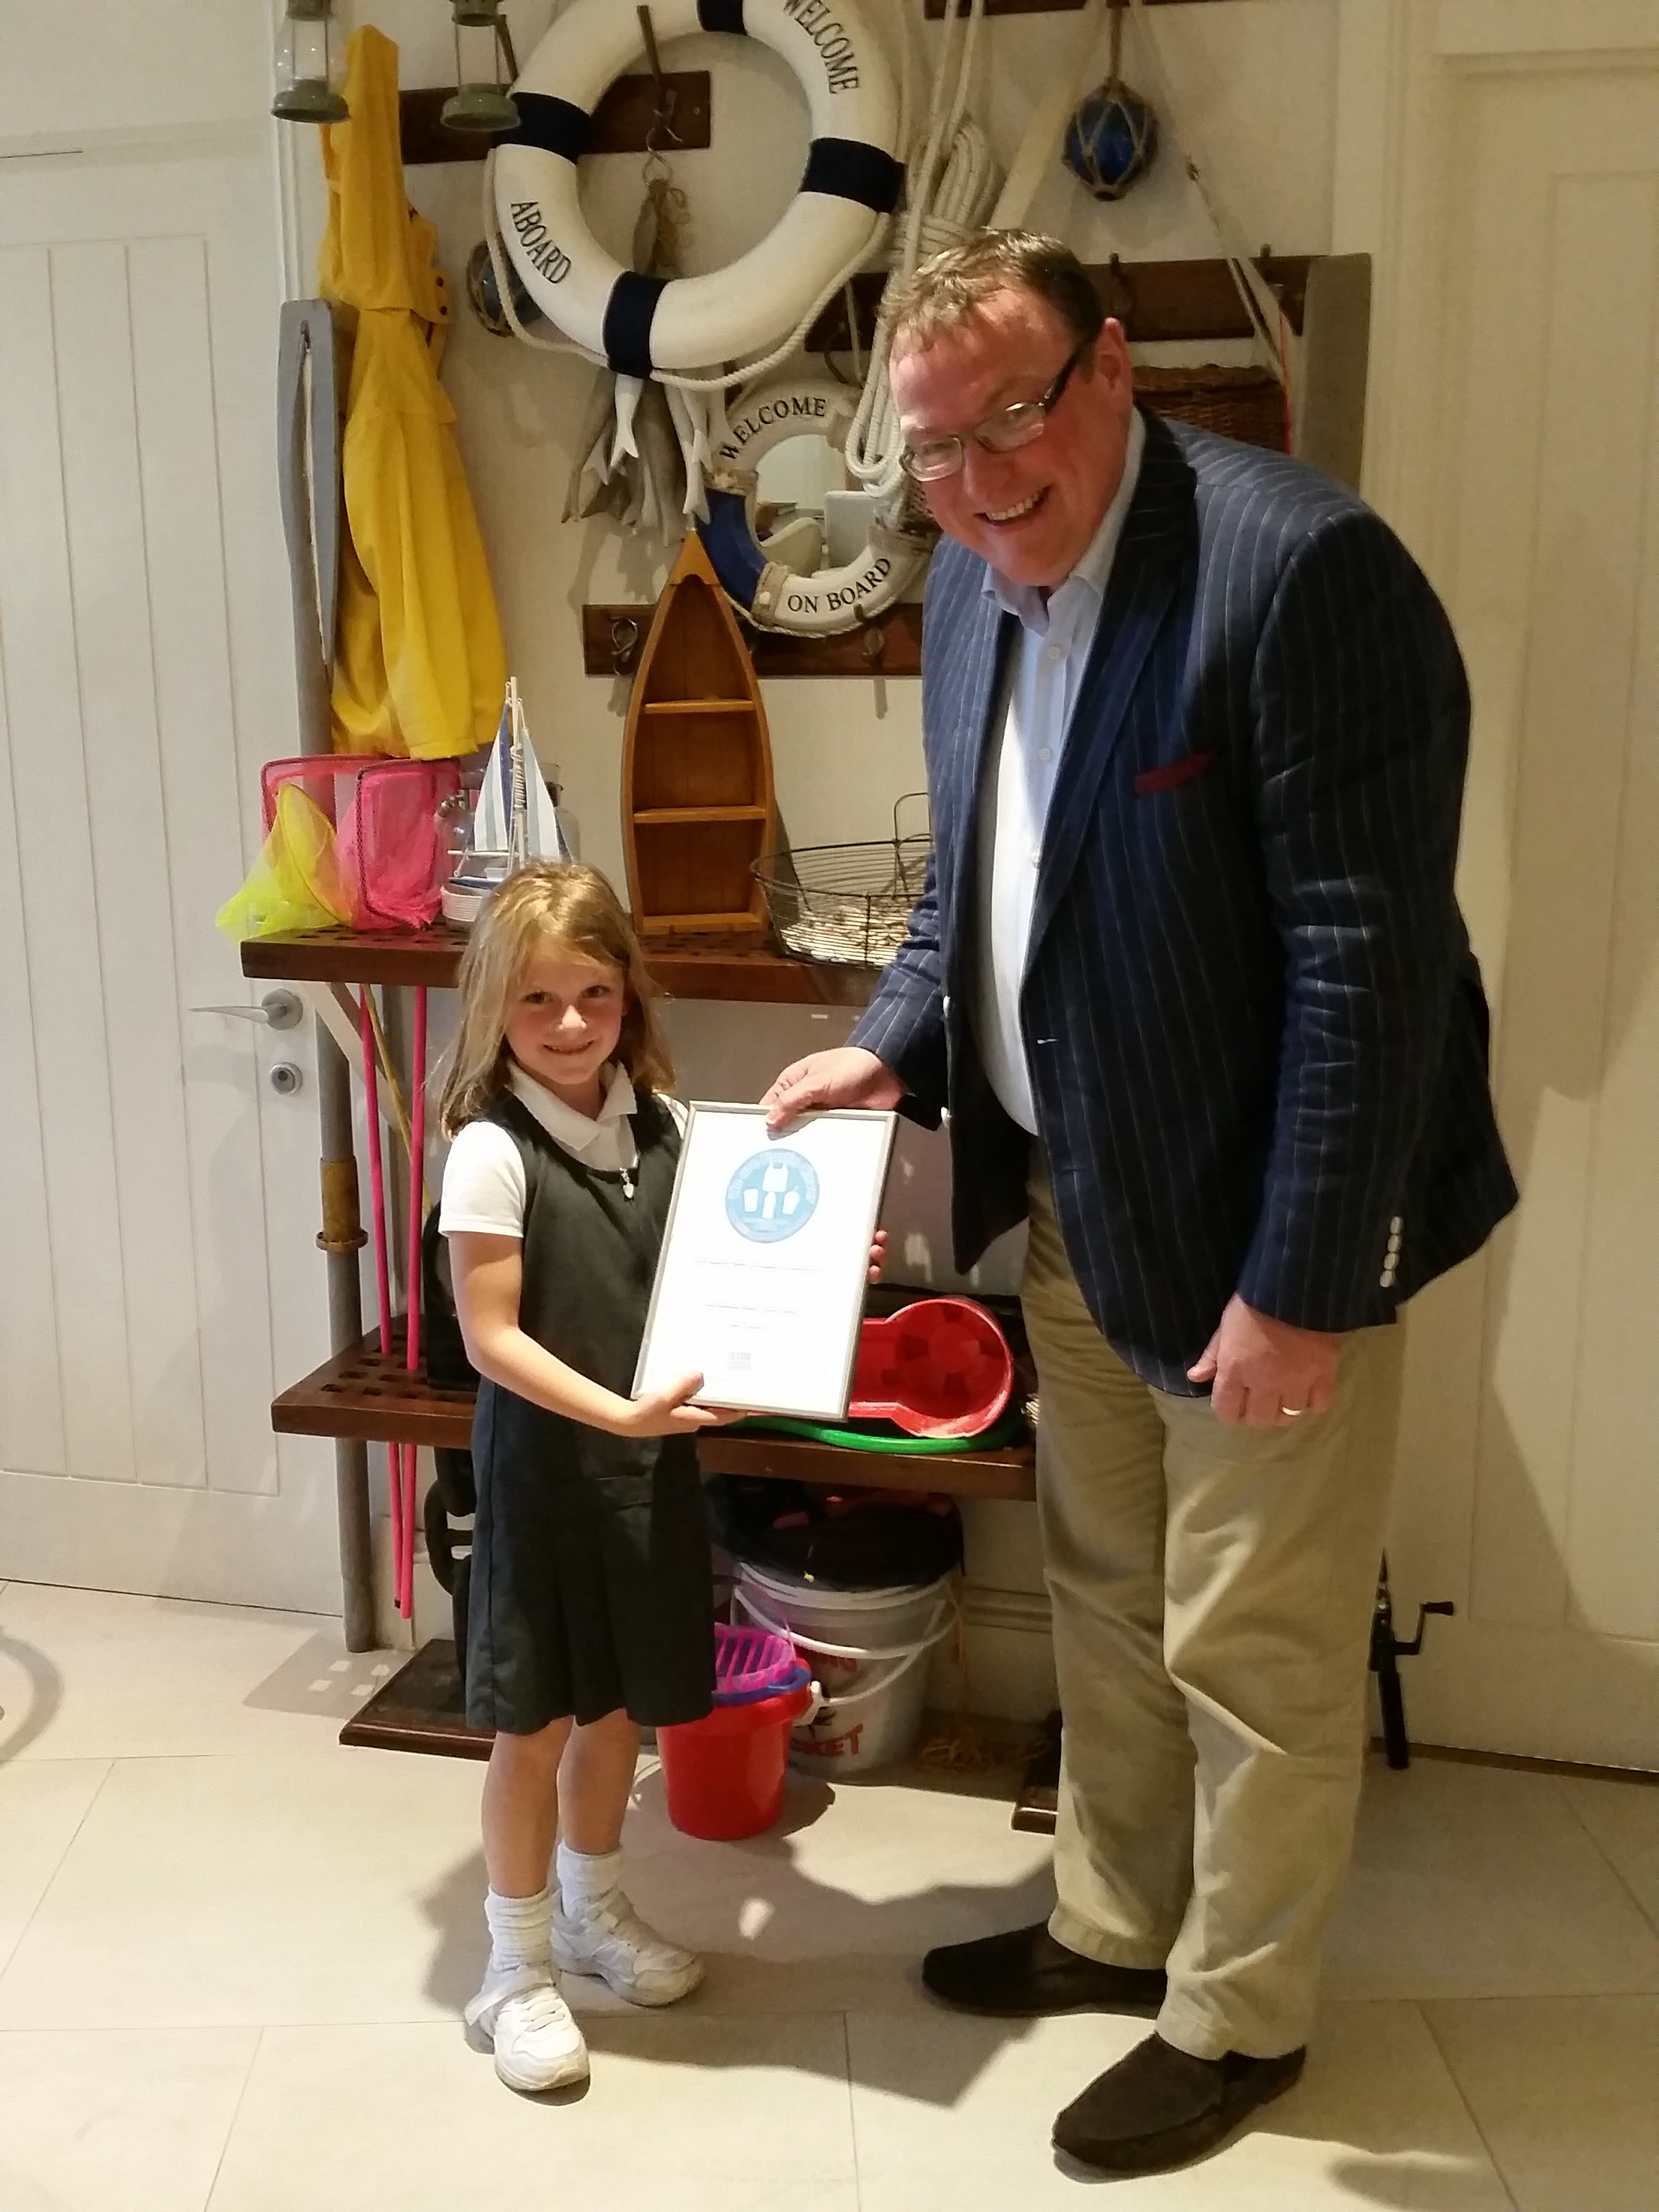 Ella giving an award to the Salcombe Harbour Hotel